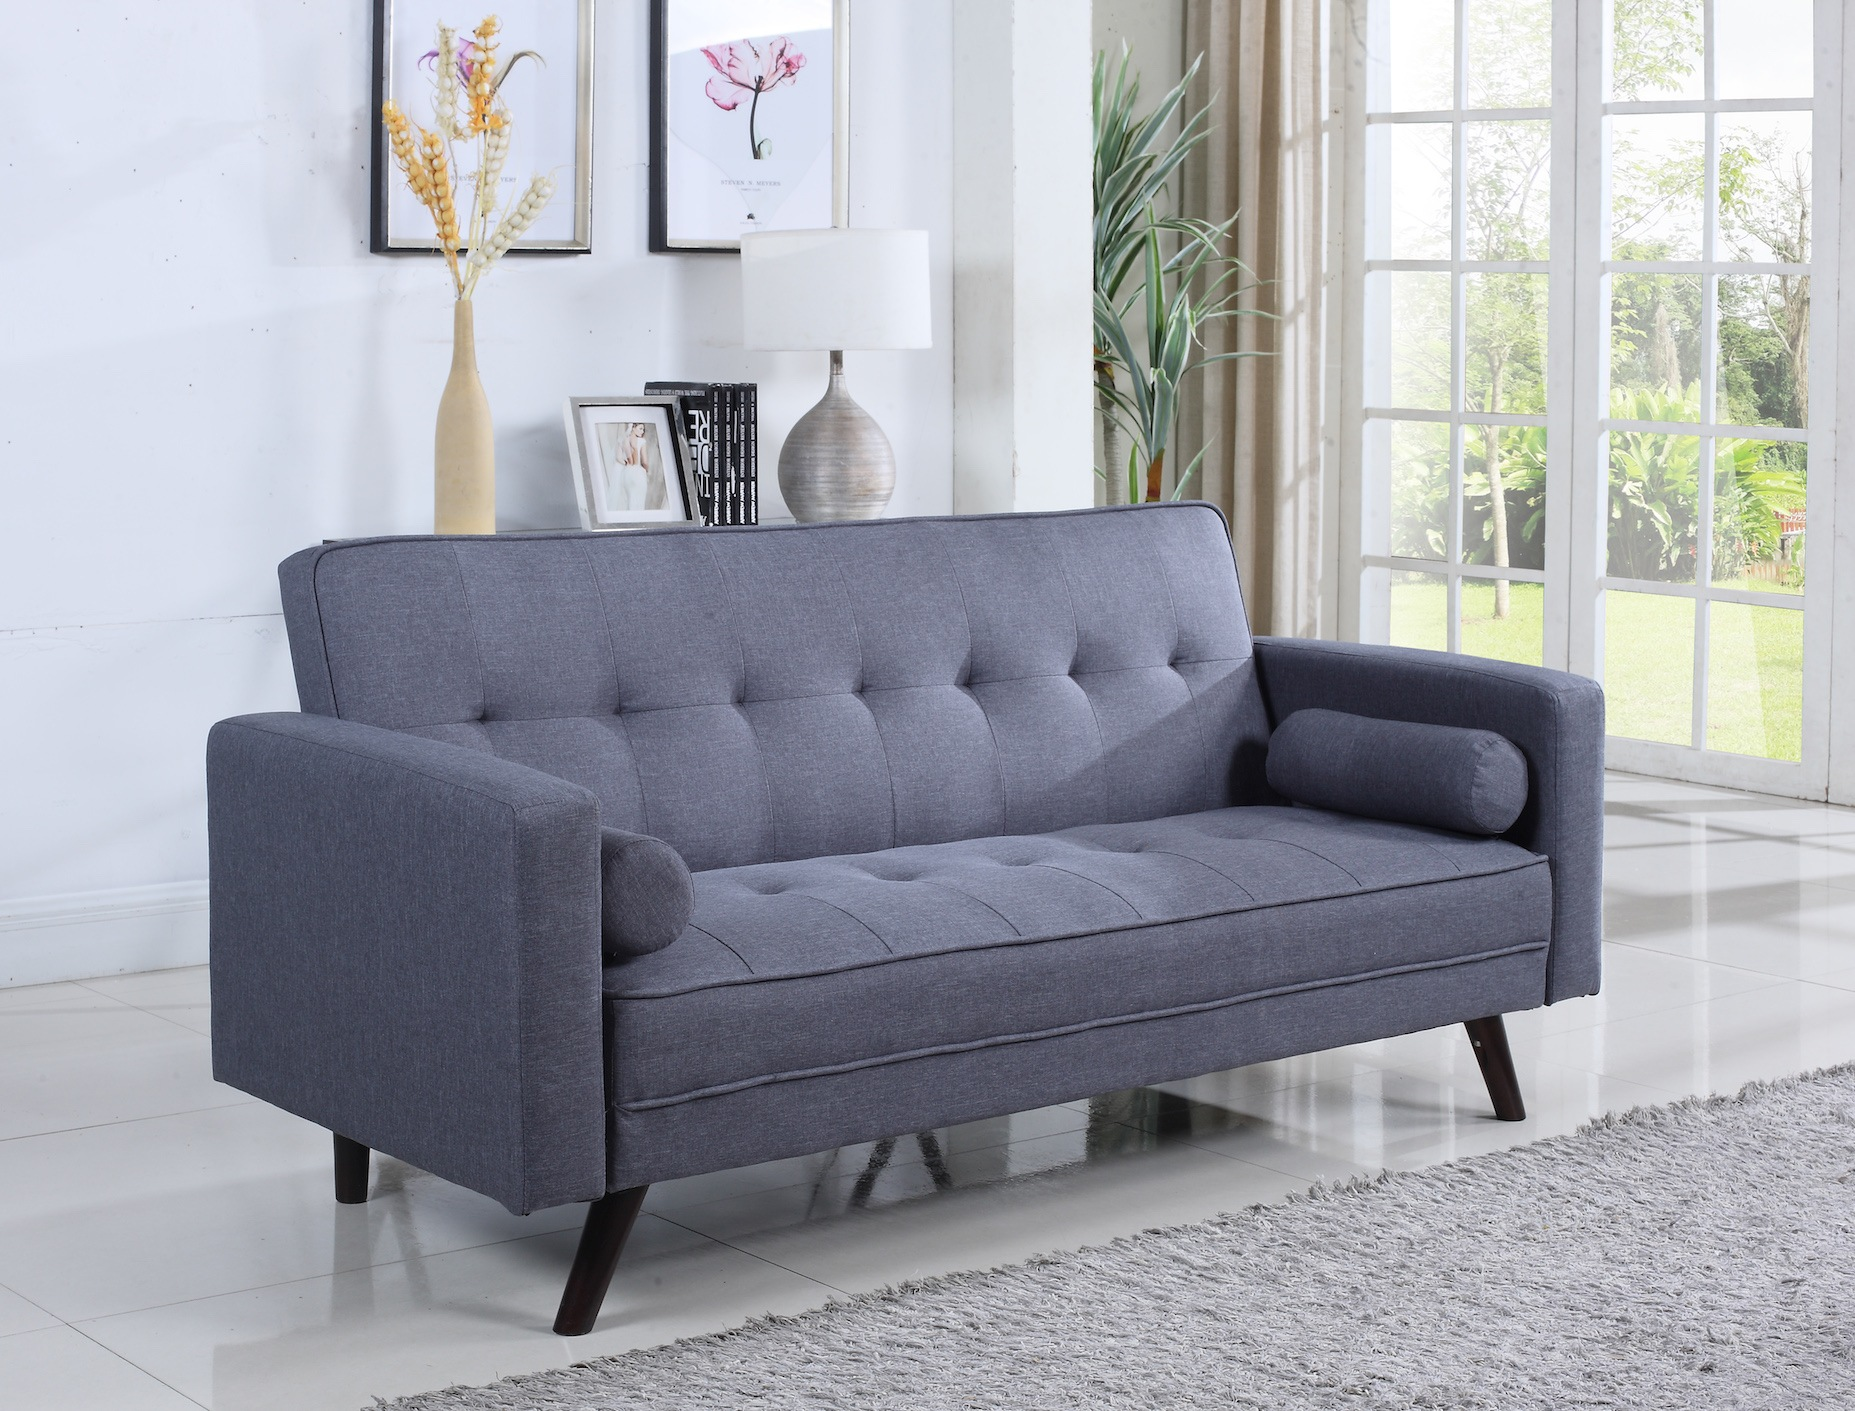 most affordable sleeper sofa coaster bed collection 7 of walmart 39s stylish furniture pieces that are